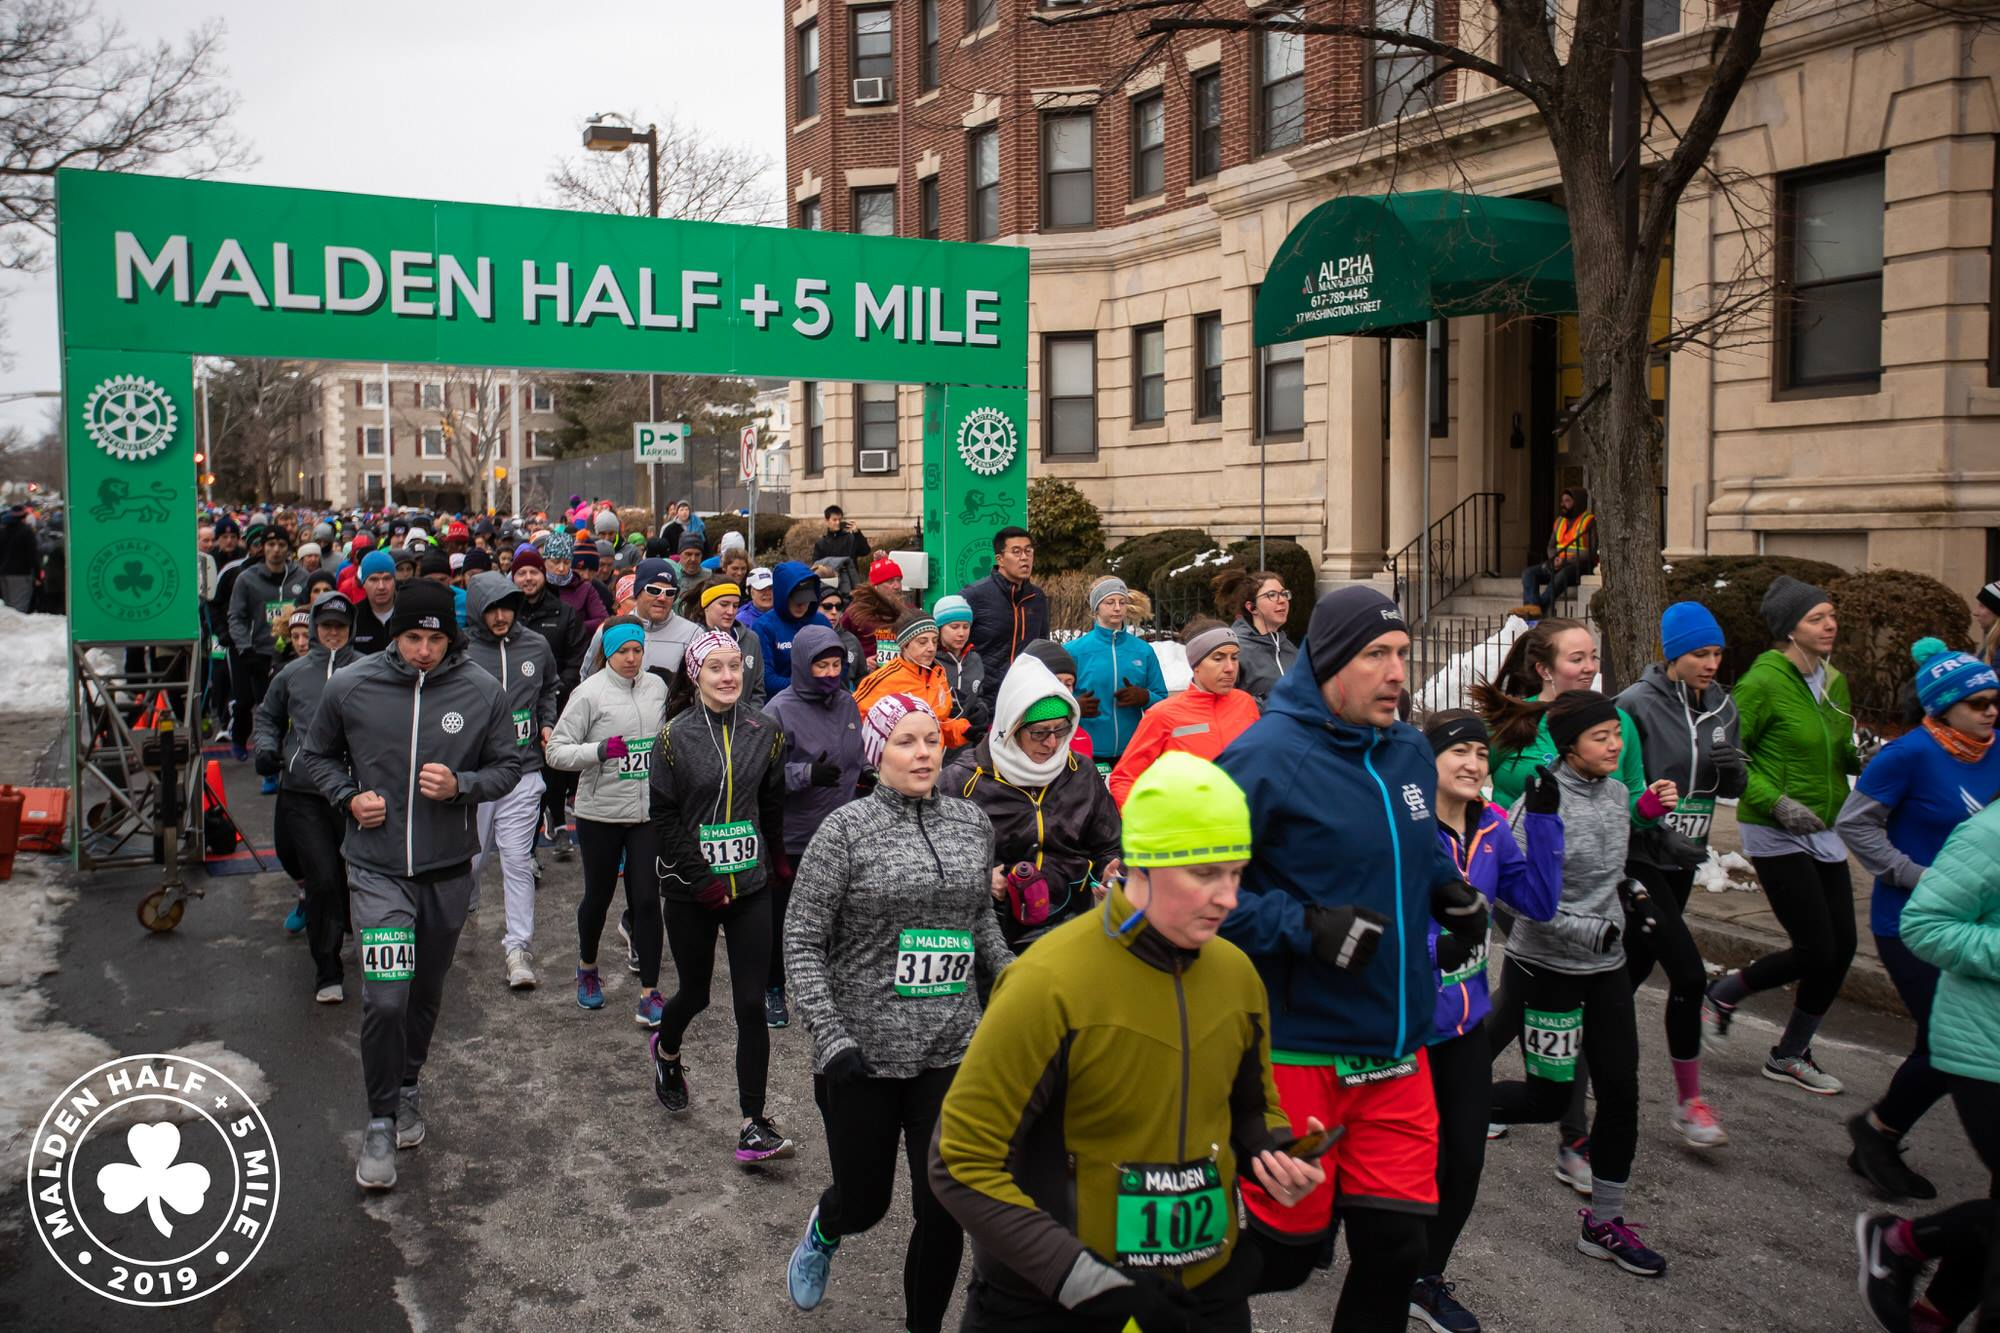 Malden's Half Marathon trained runners for the big event